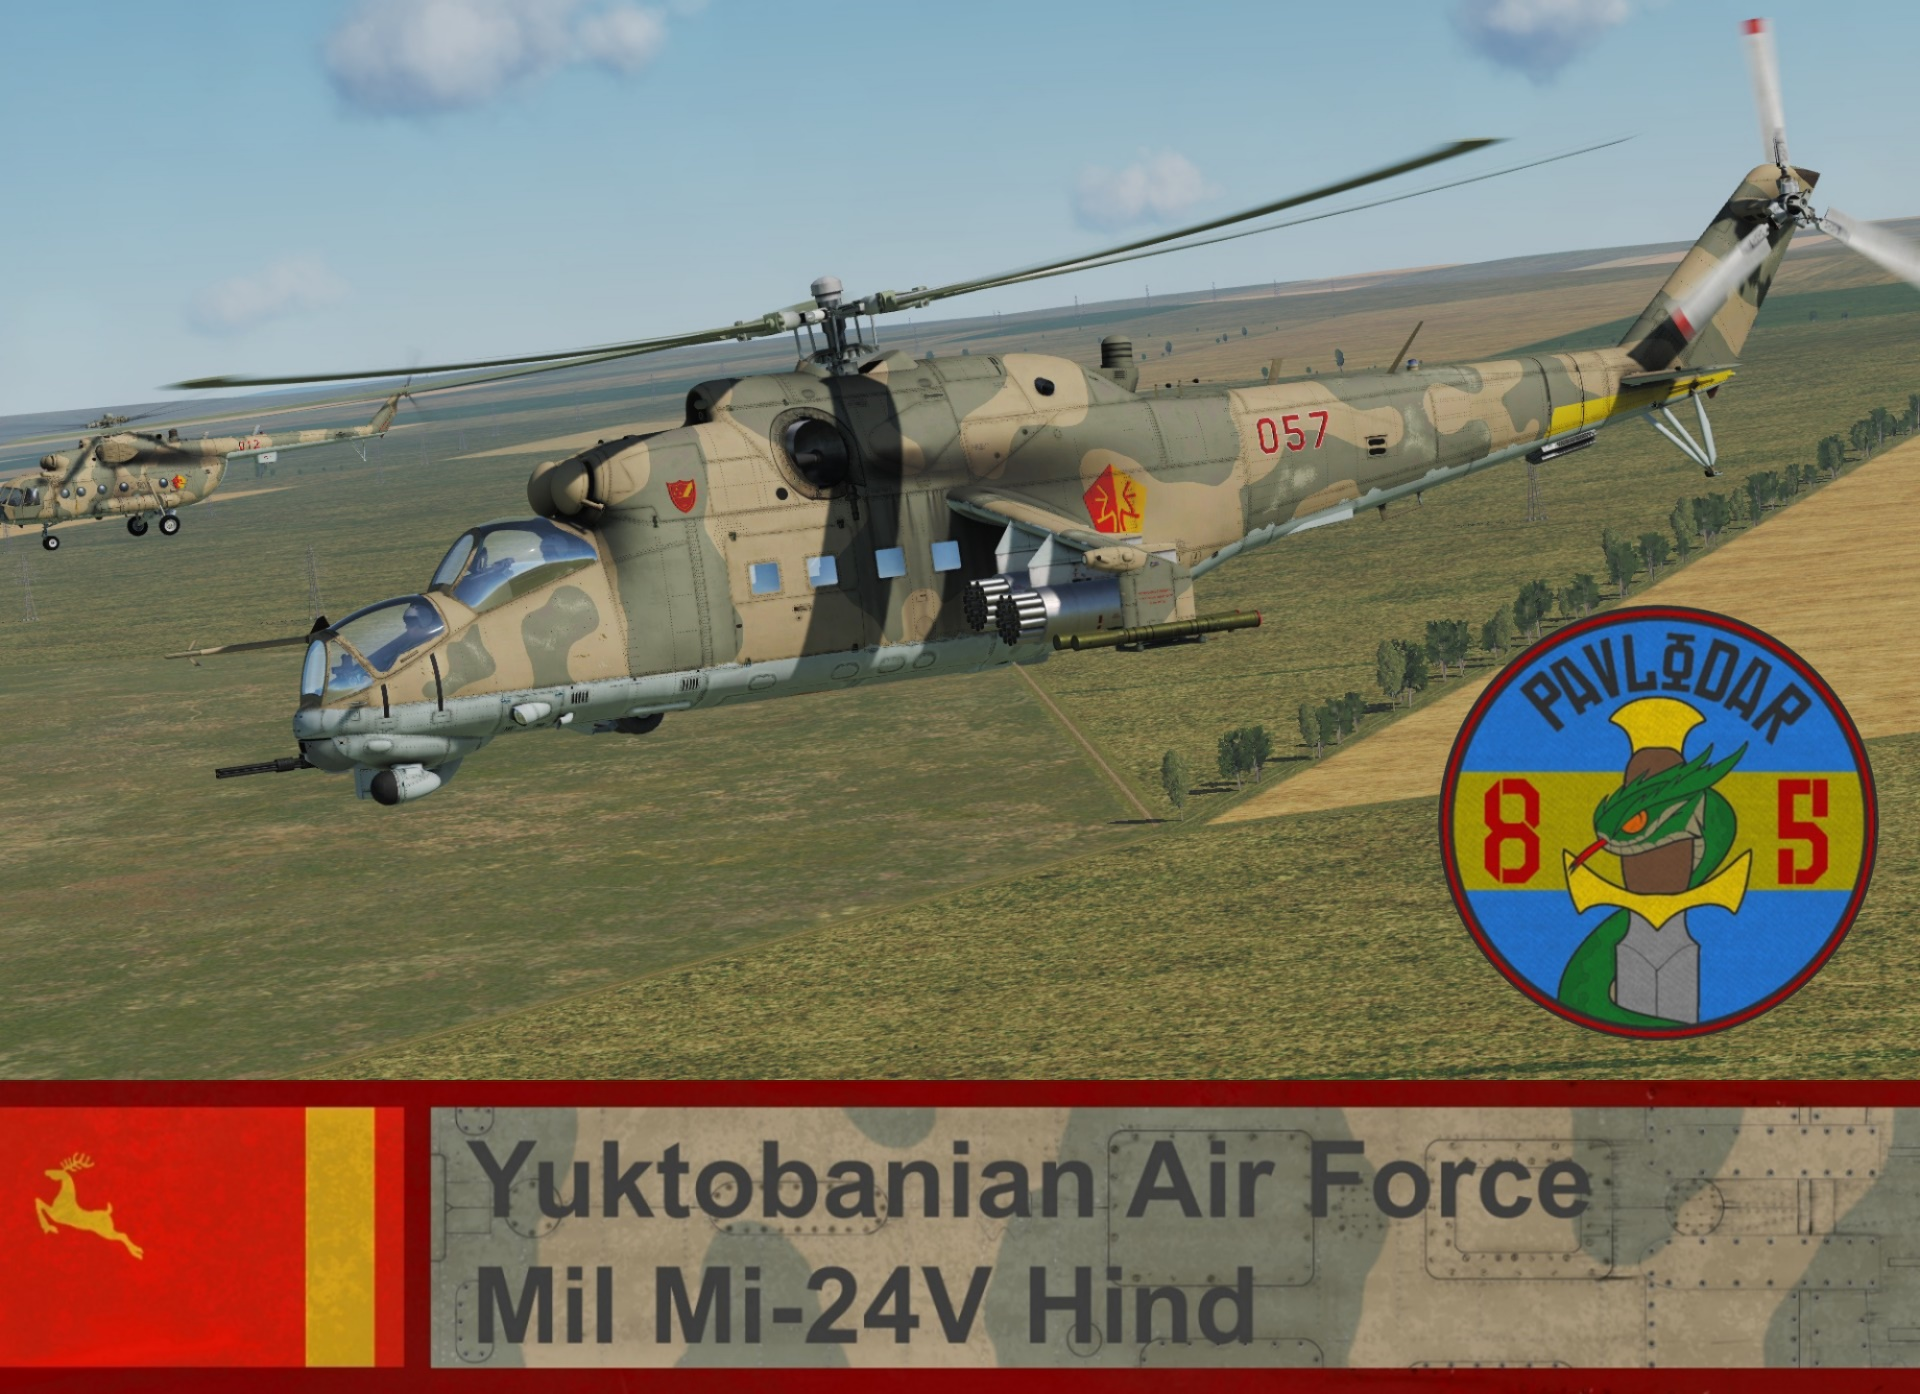 Yuktobanian Air Force Mi-24V - Ace Combat 5 (85 IHS) *UPDATED*